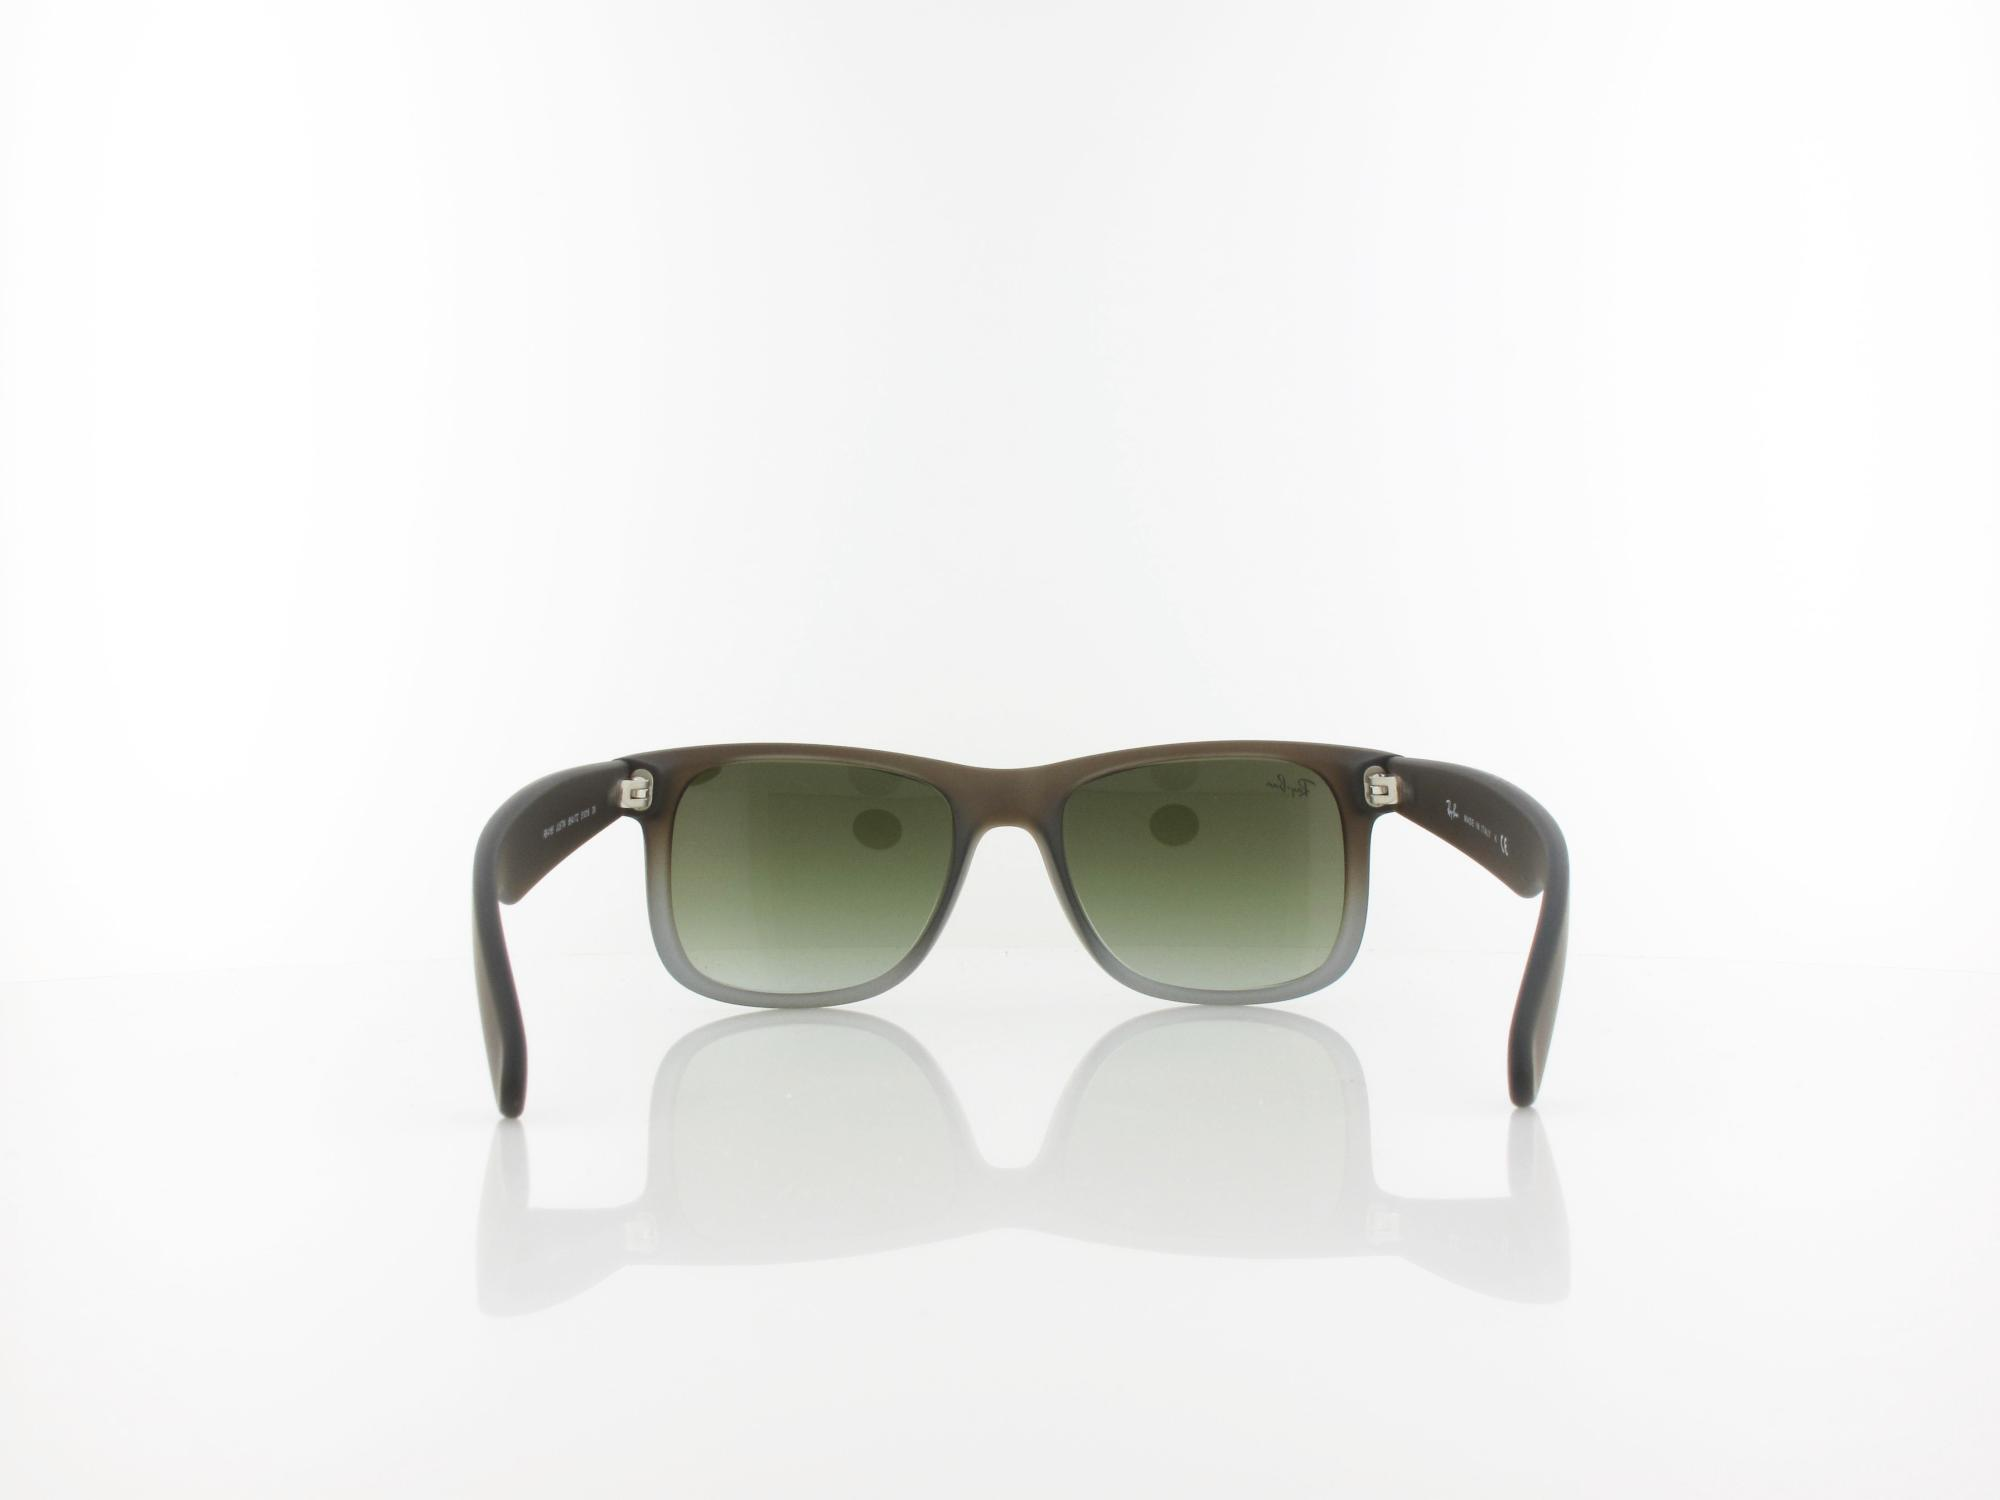 Ray Ban | Justin RB4165 854/7Z 51 | rubber brown on grey / green gradient